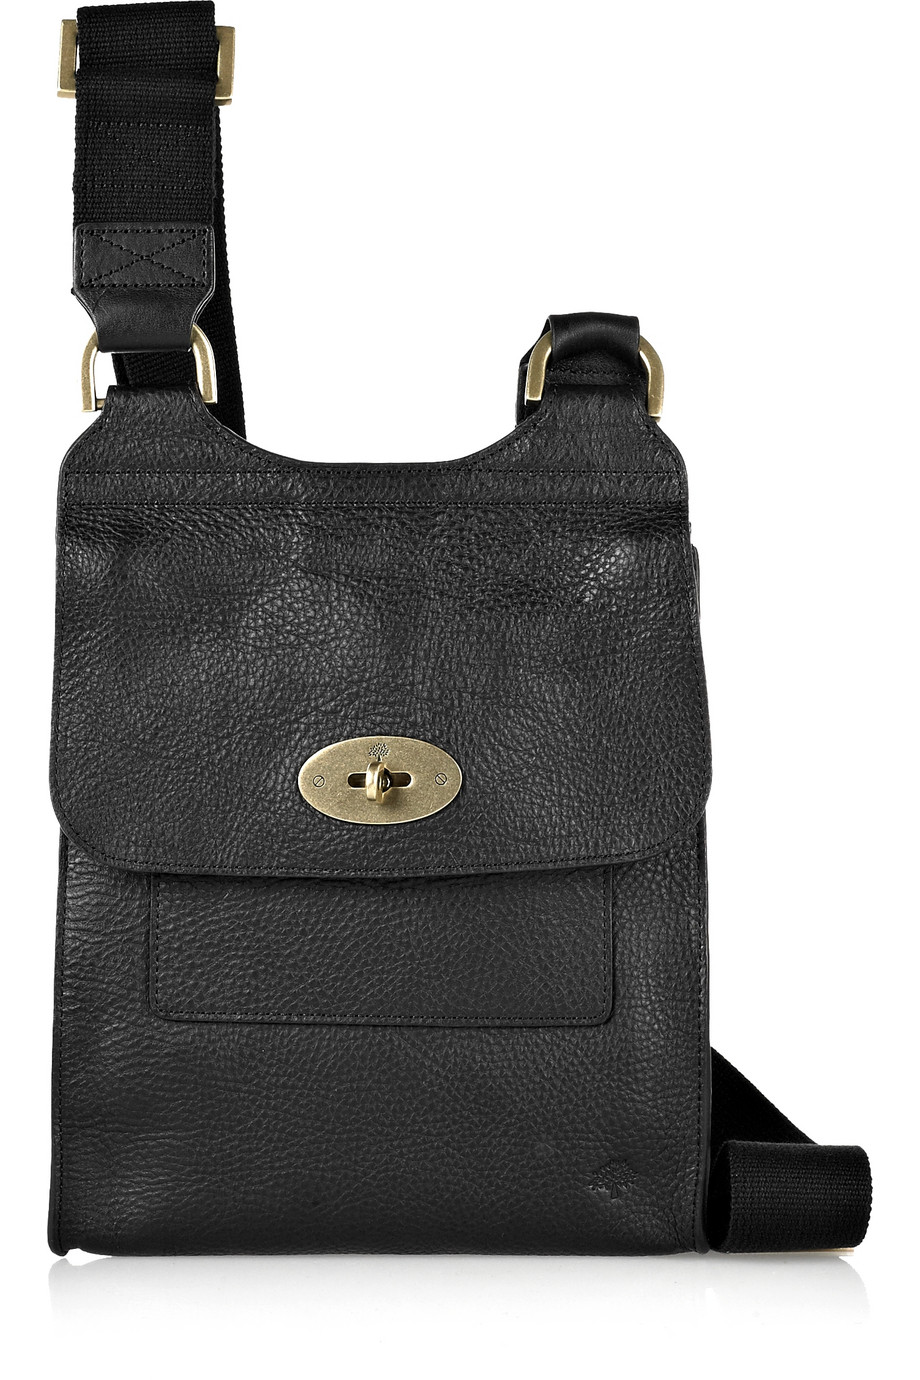 Bag At You Fashion Blog Hip E Bags White Backpack: Mulberry Antony Leather Crossbody Bag In Black